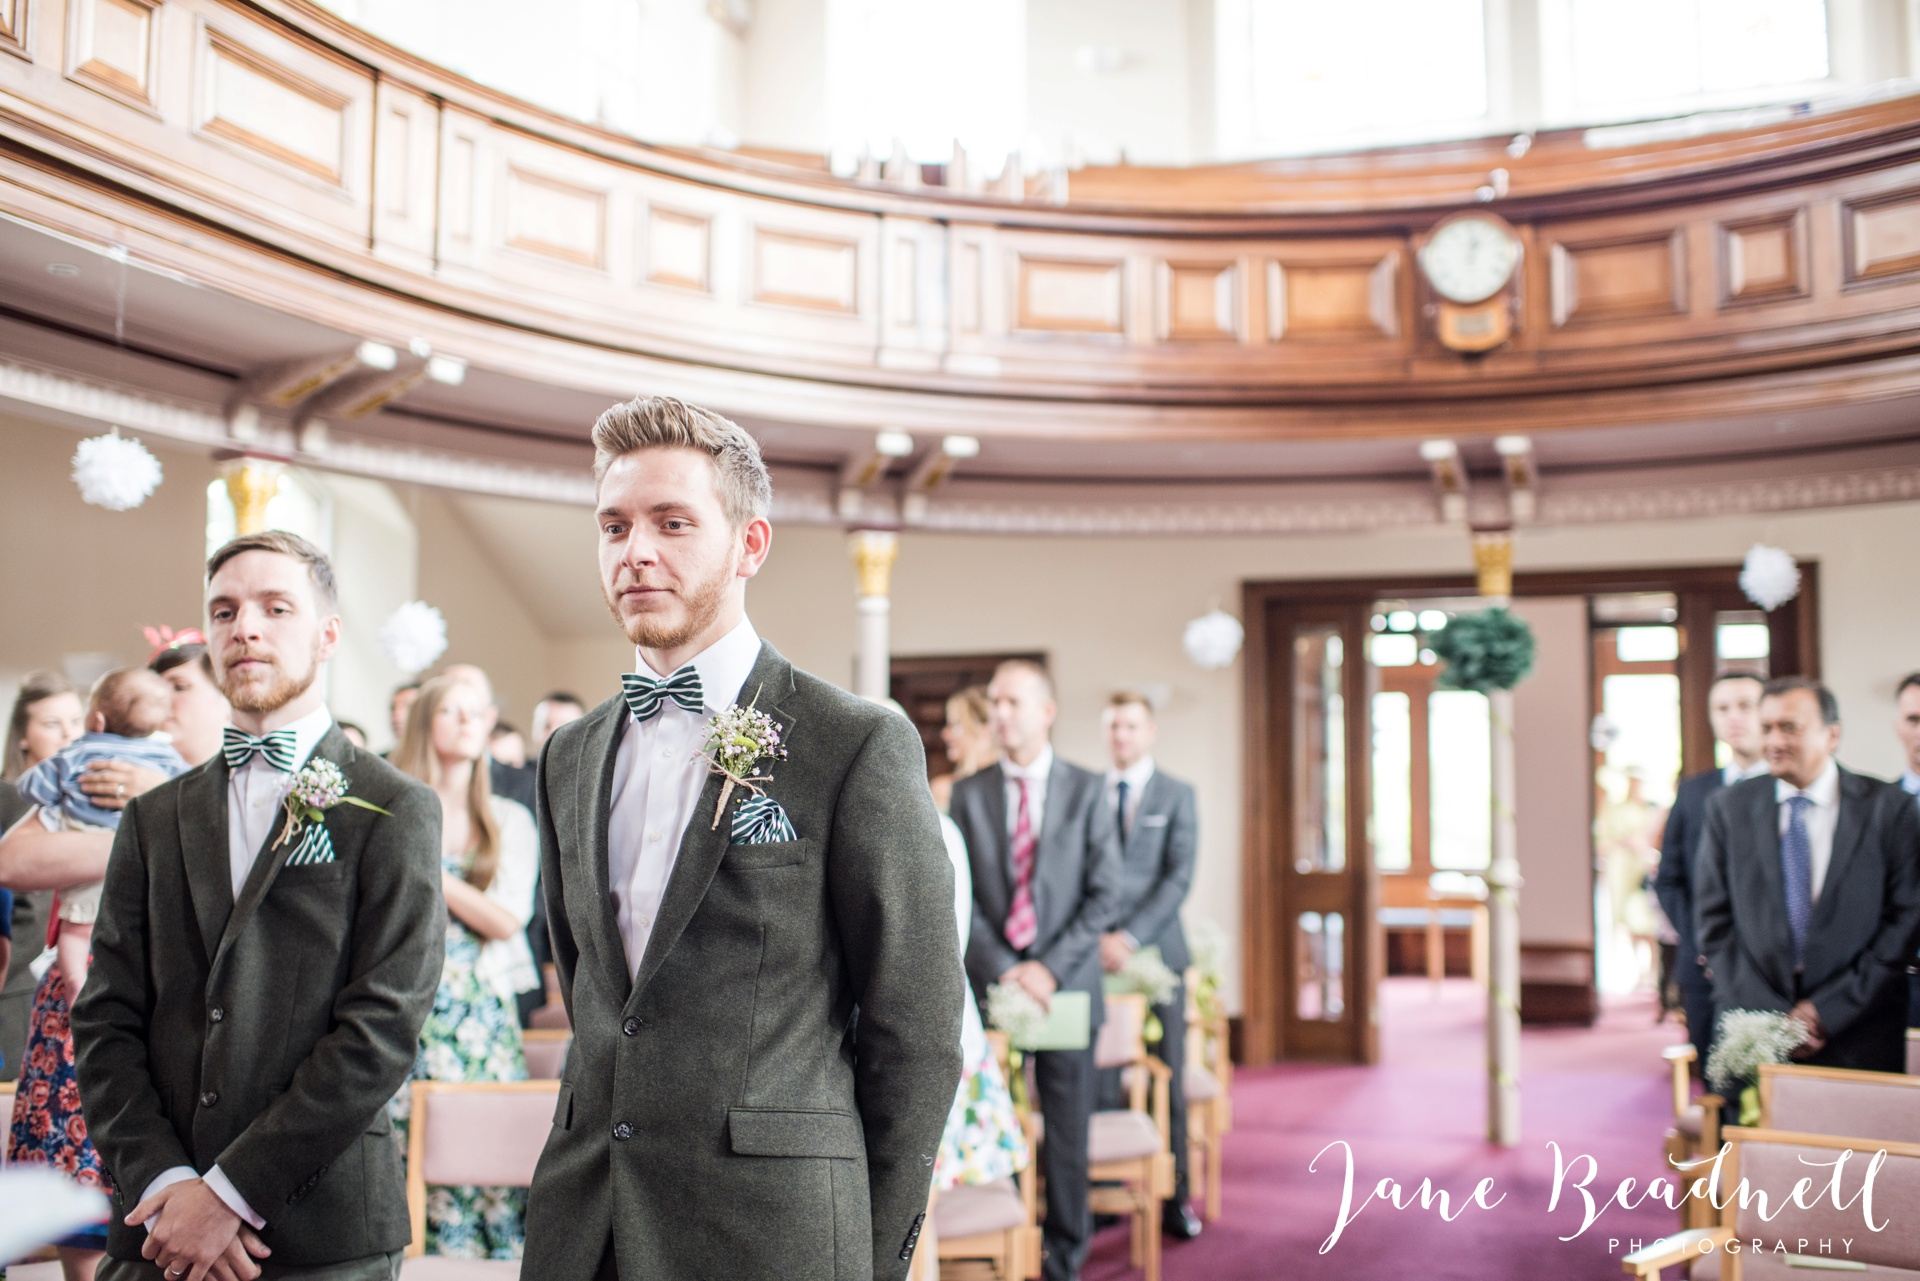 Jane Beadnell fine art wedding photographer The Old Deanery Ripon_0023